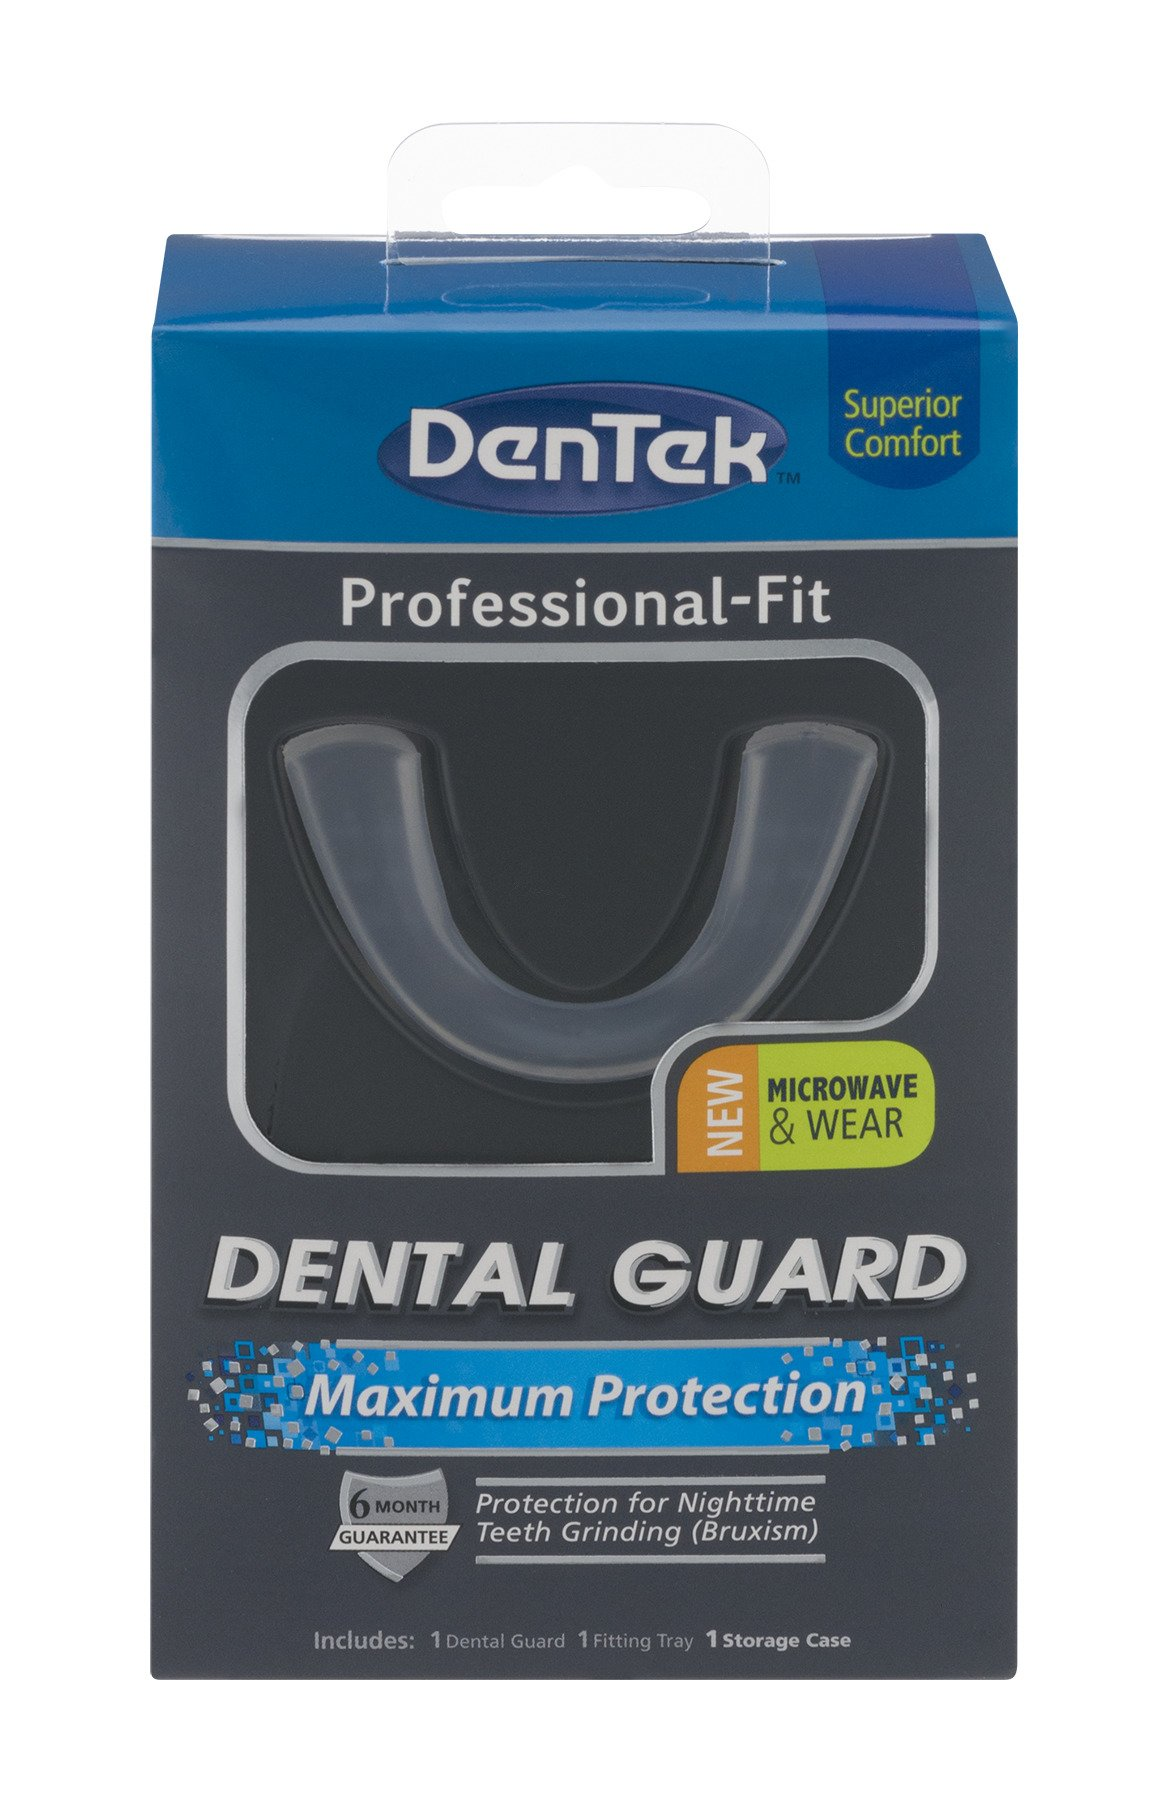 DenTek Professional-Fit Maximum Protection Dental Guard | Protection for Nightime Teeth Grinding